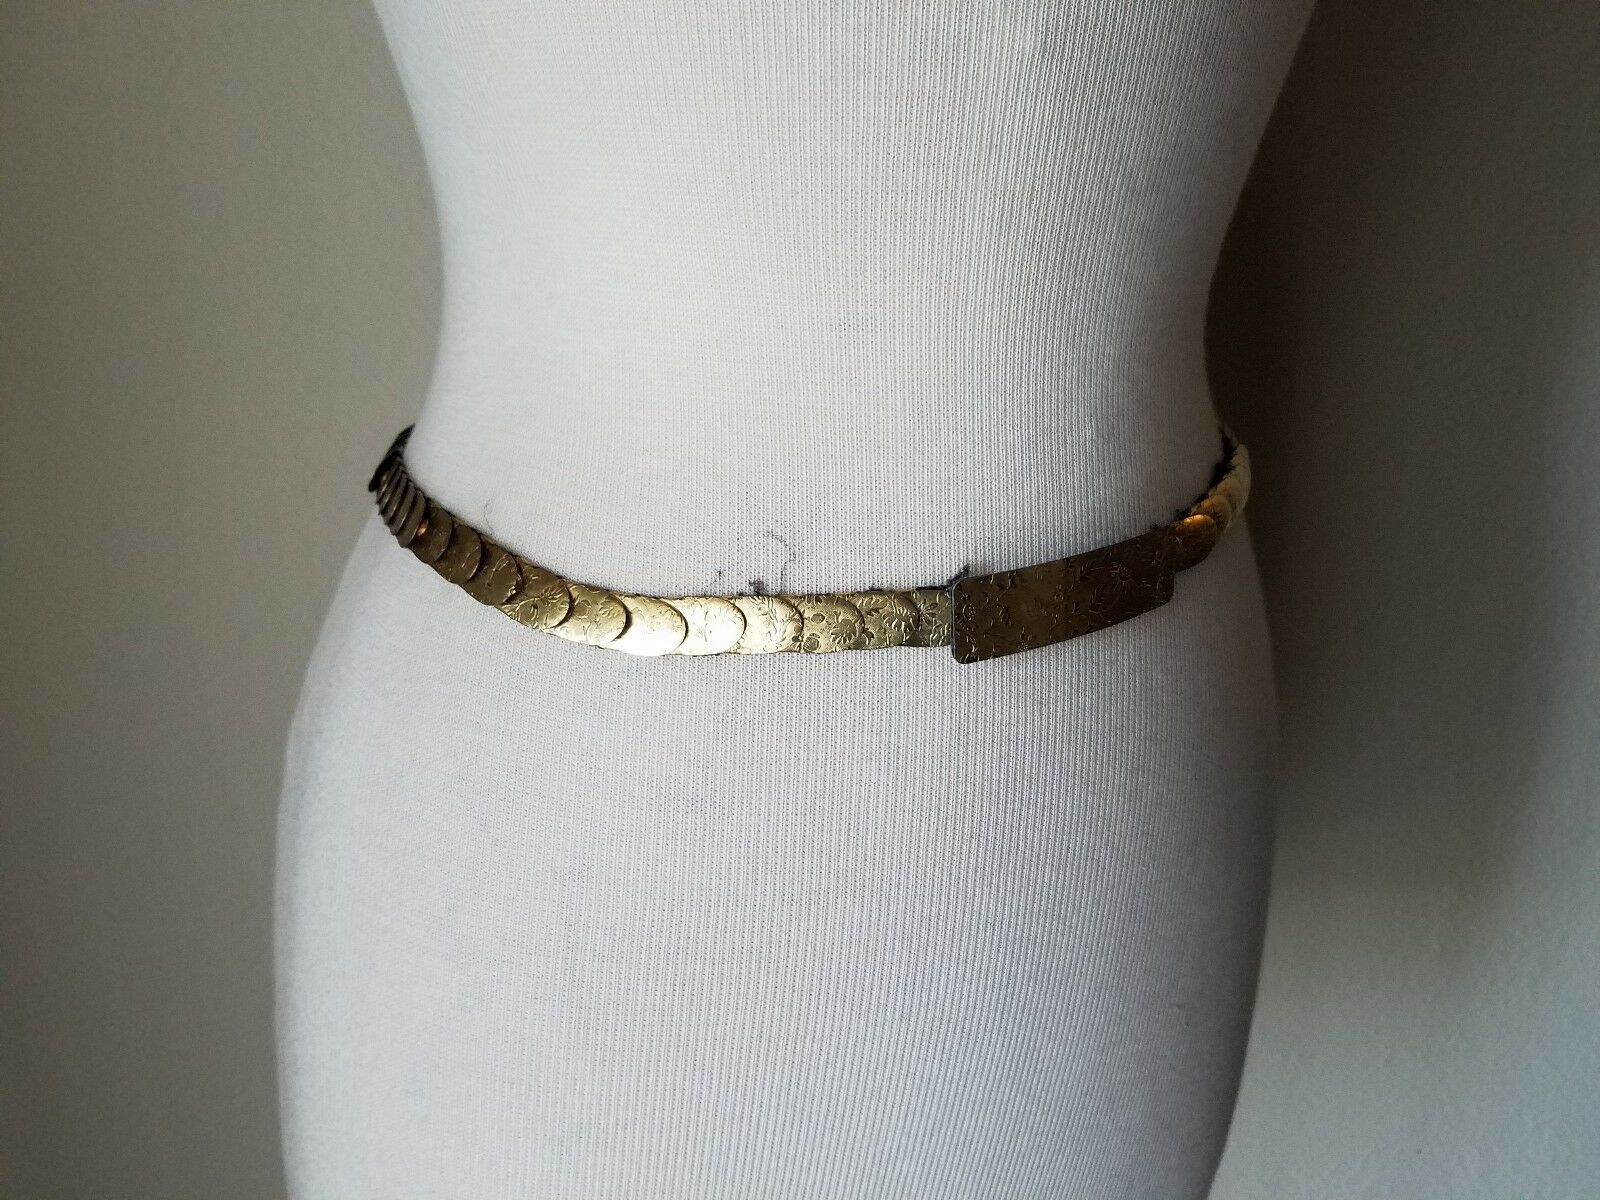 Vintage Fashion Accessories Set Gold Tone Black Scaled Skinny Belt & Earrings